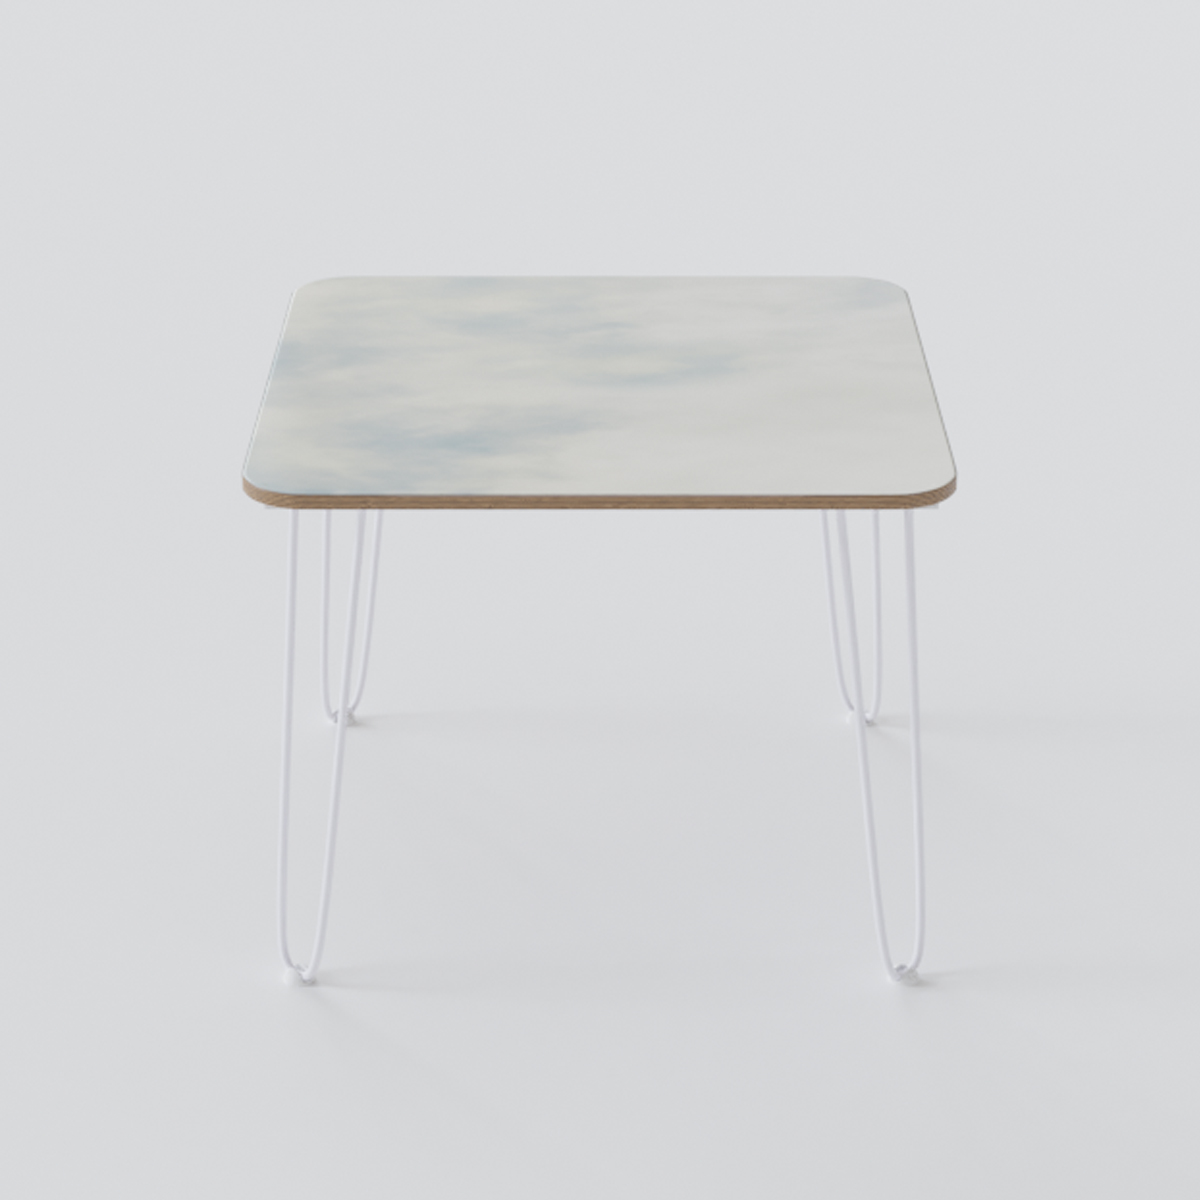 Chassie Air Play Table